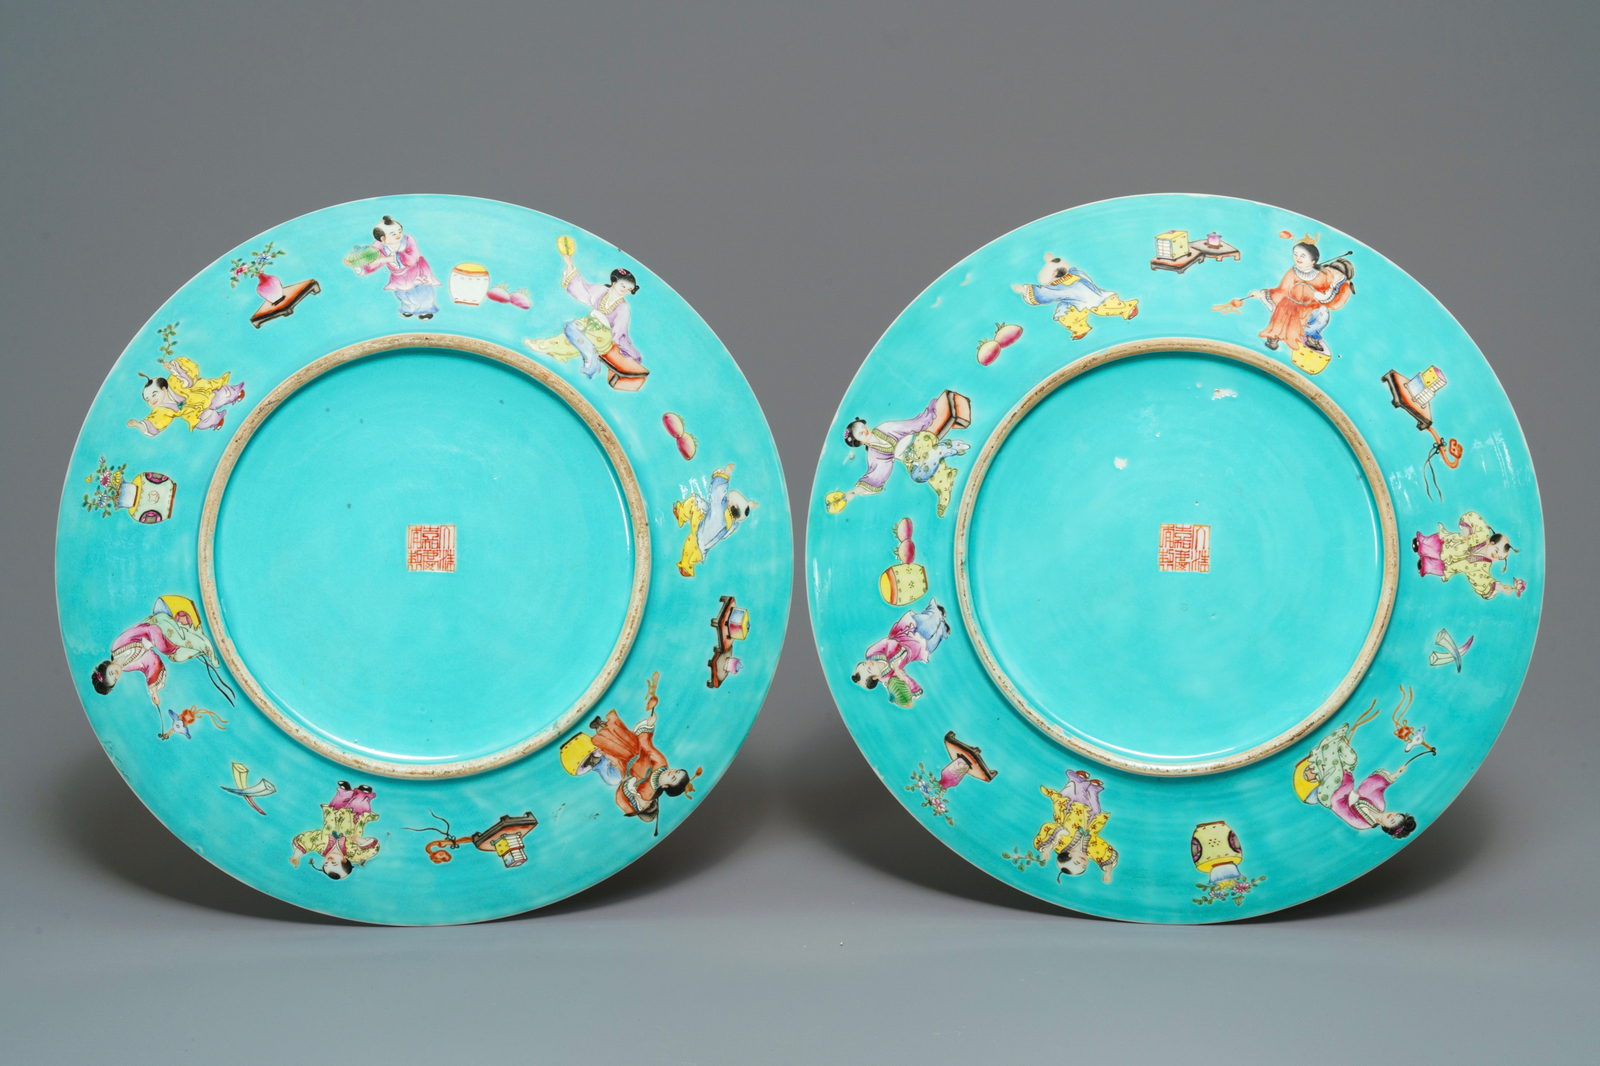 Lot 56 - A pair of Chinese famille rose turquoise-ground dishes, Jiaqing mark, 20th C.